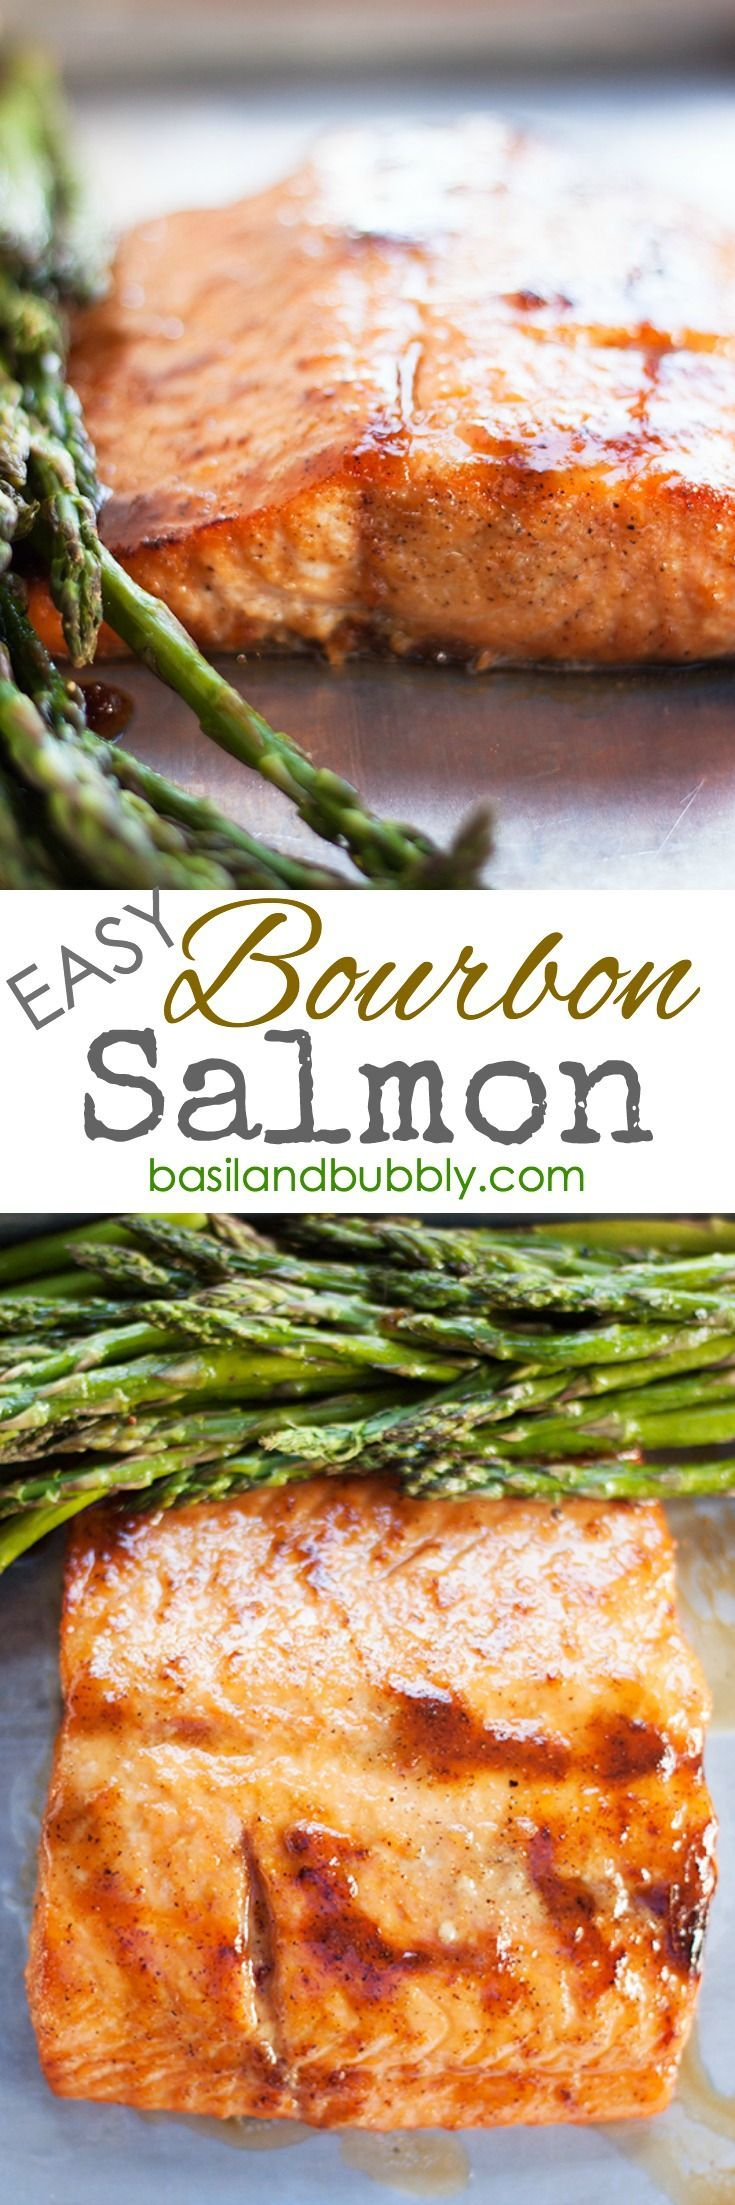 I found a SUPER EASY Bourbon Salmon recipe for a quick weeknight dinner.